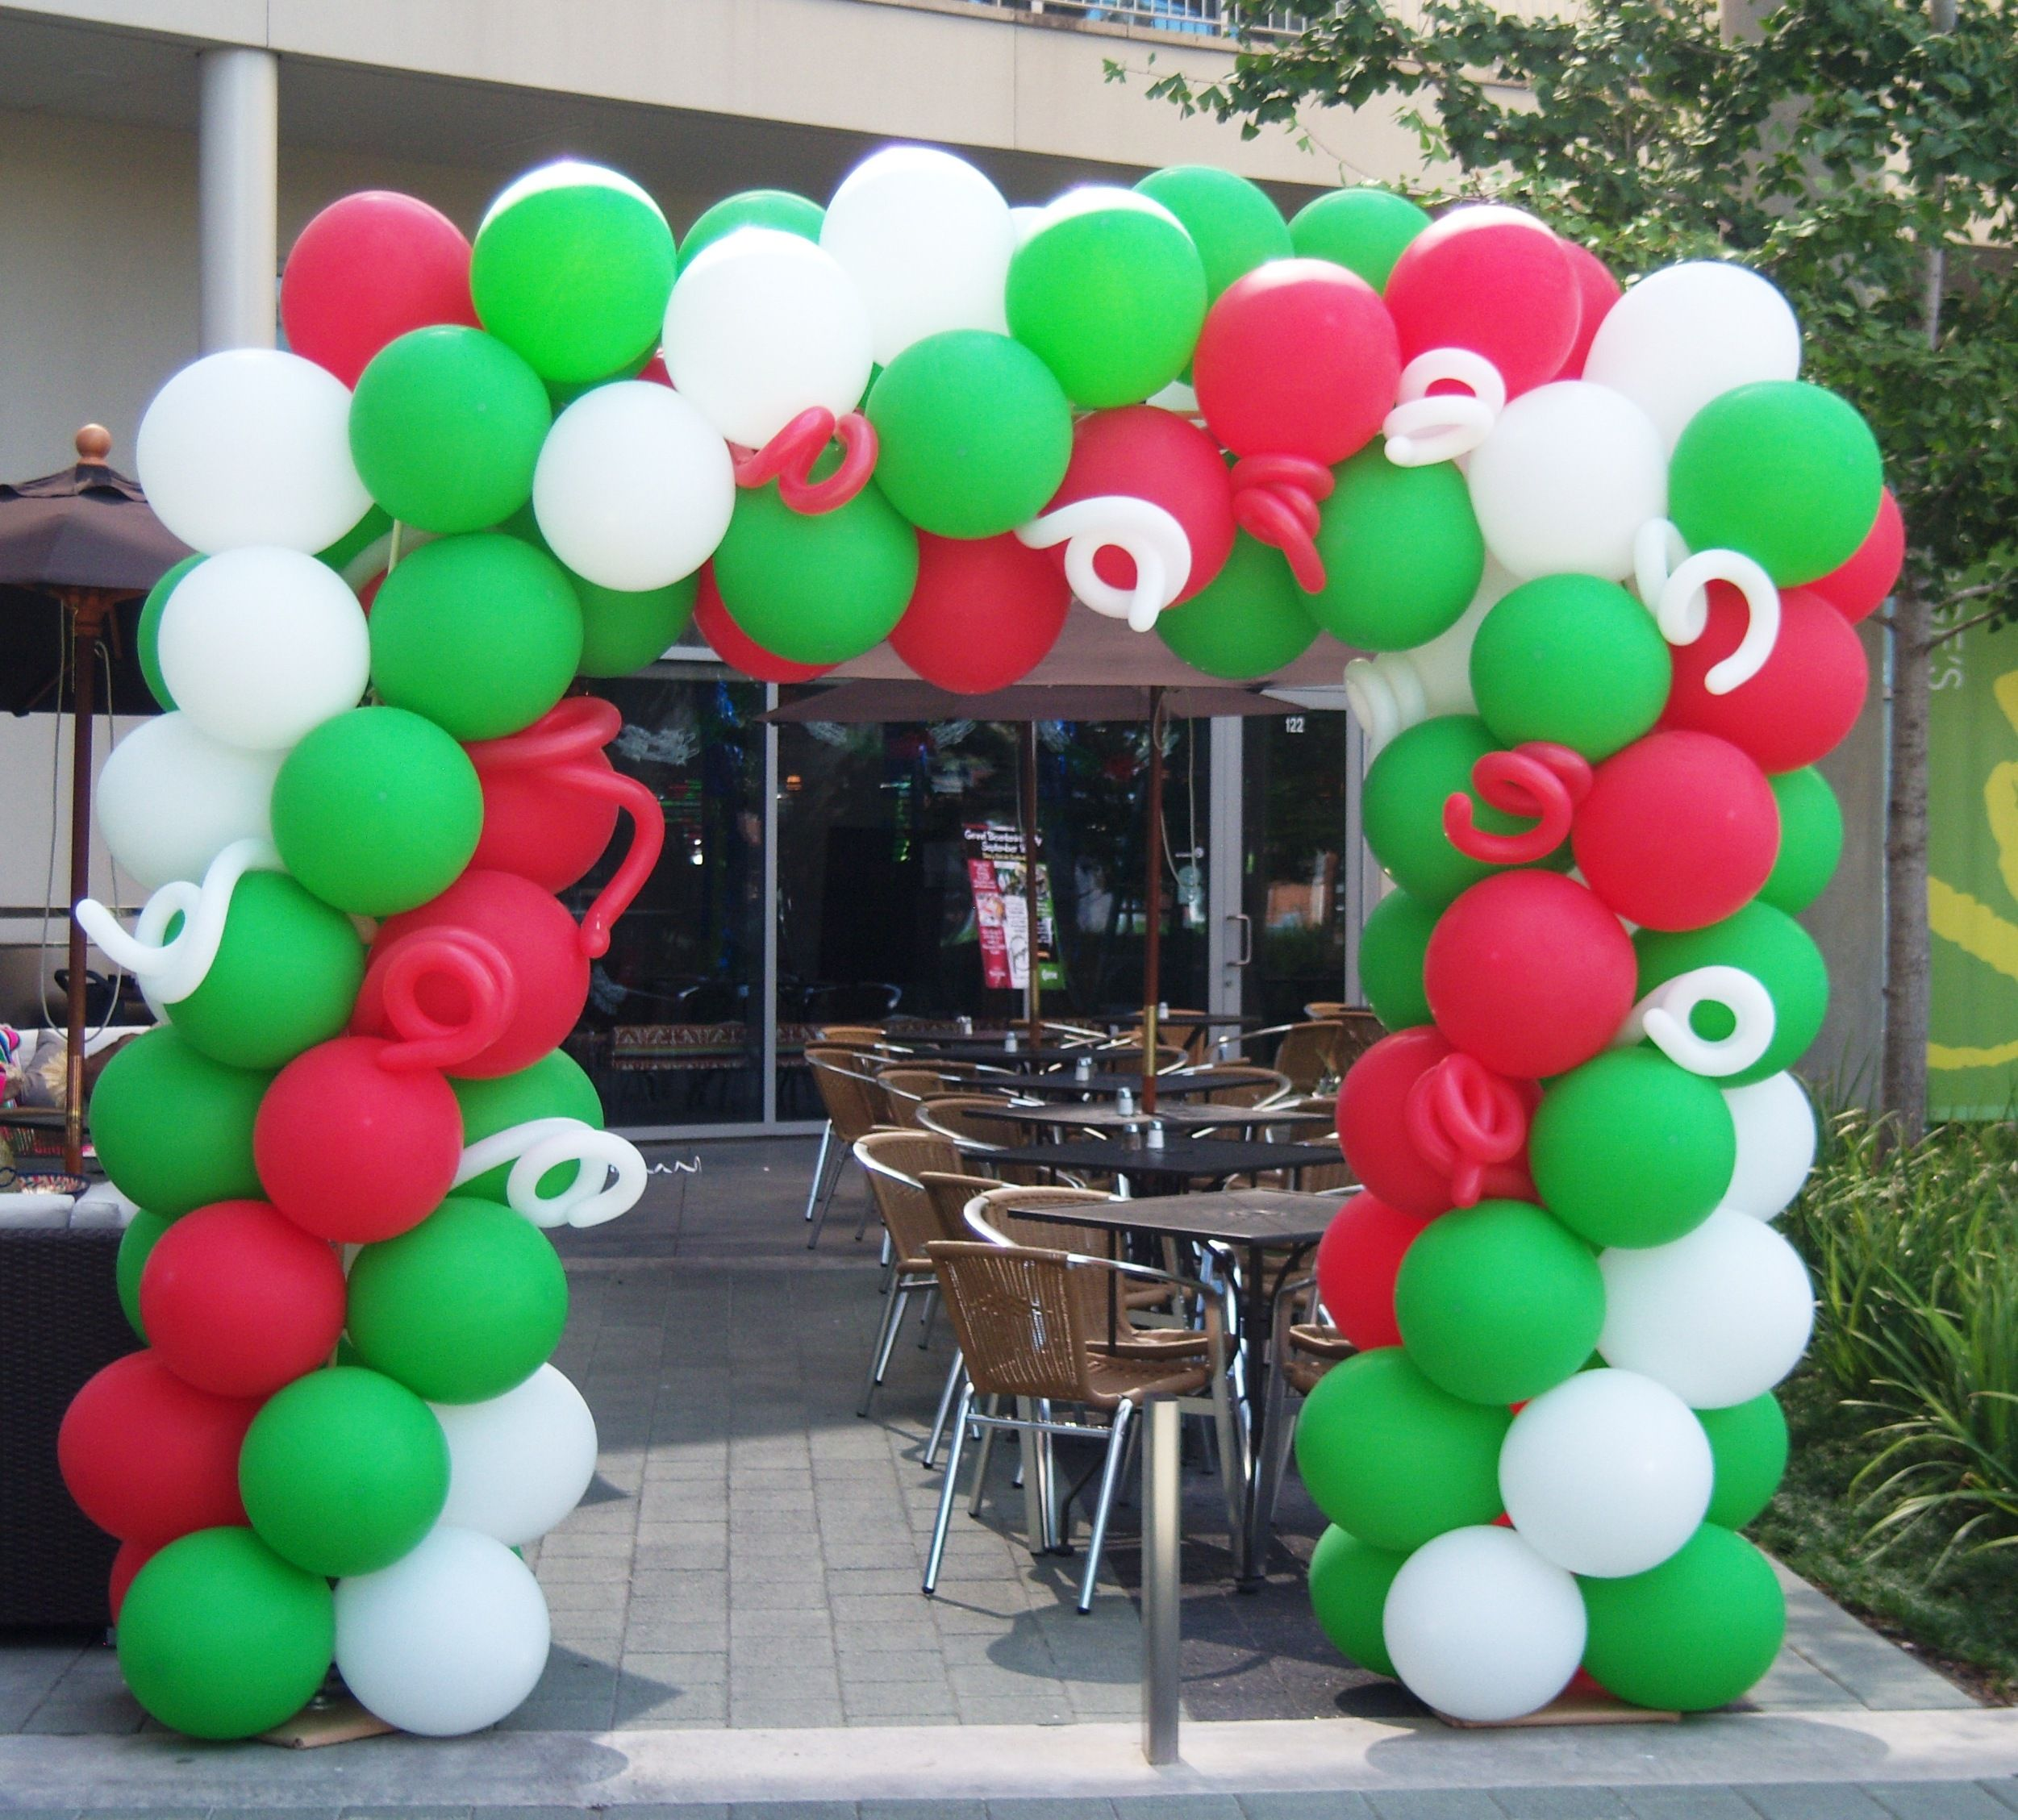 Mexican Independence Day with oversized outdoor balloons